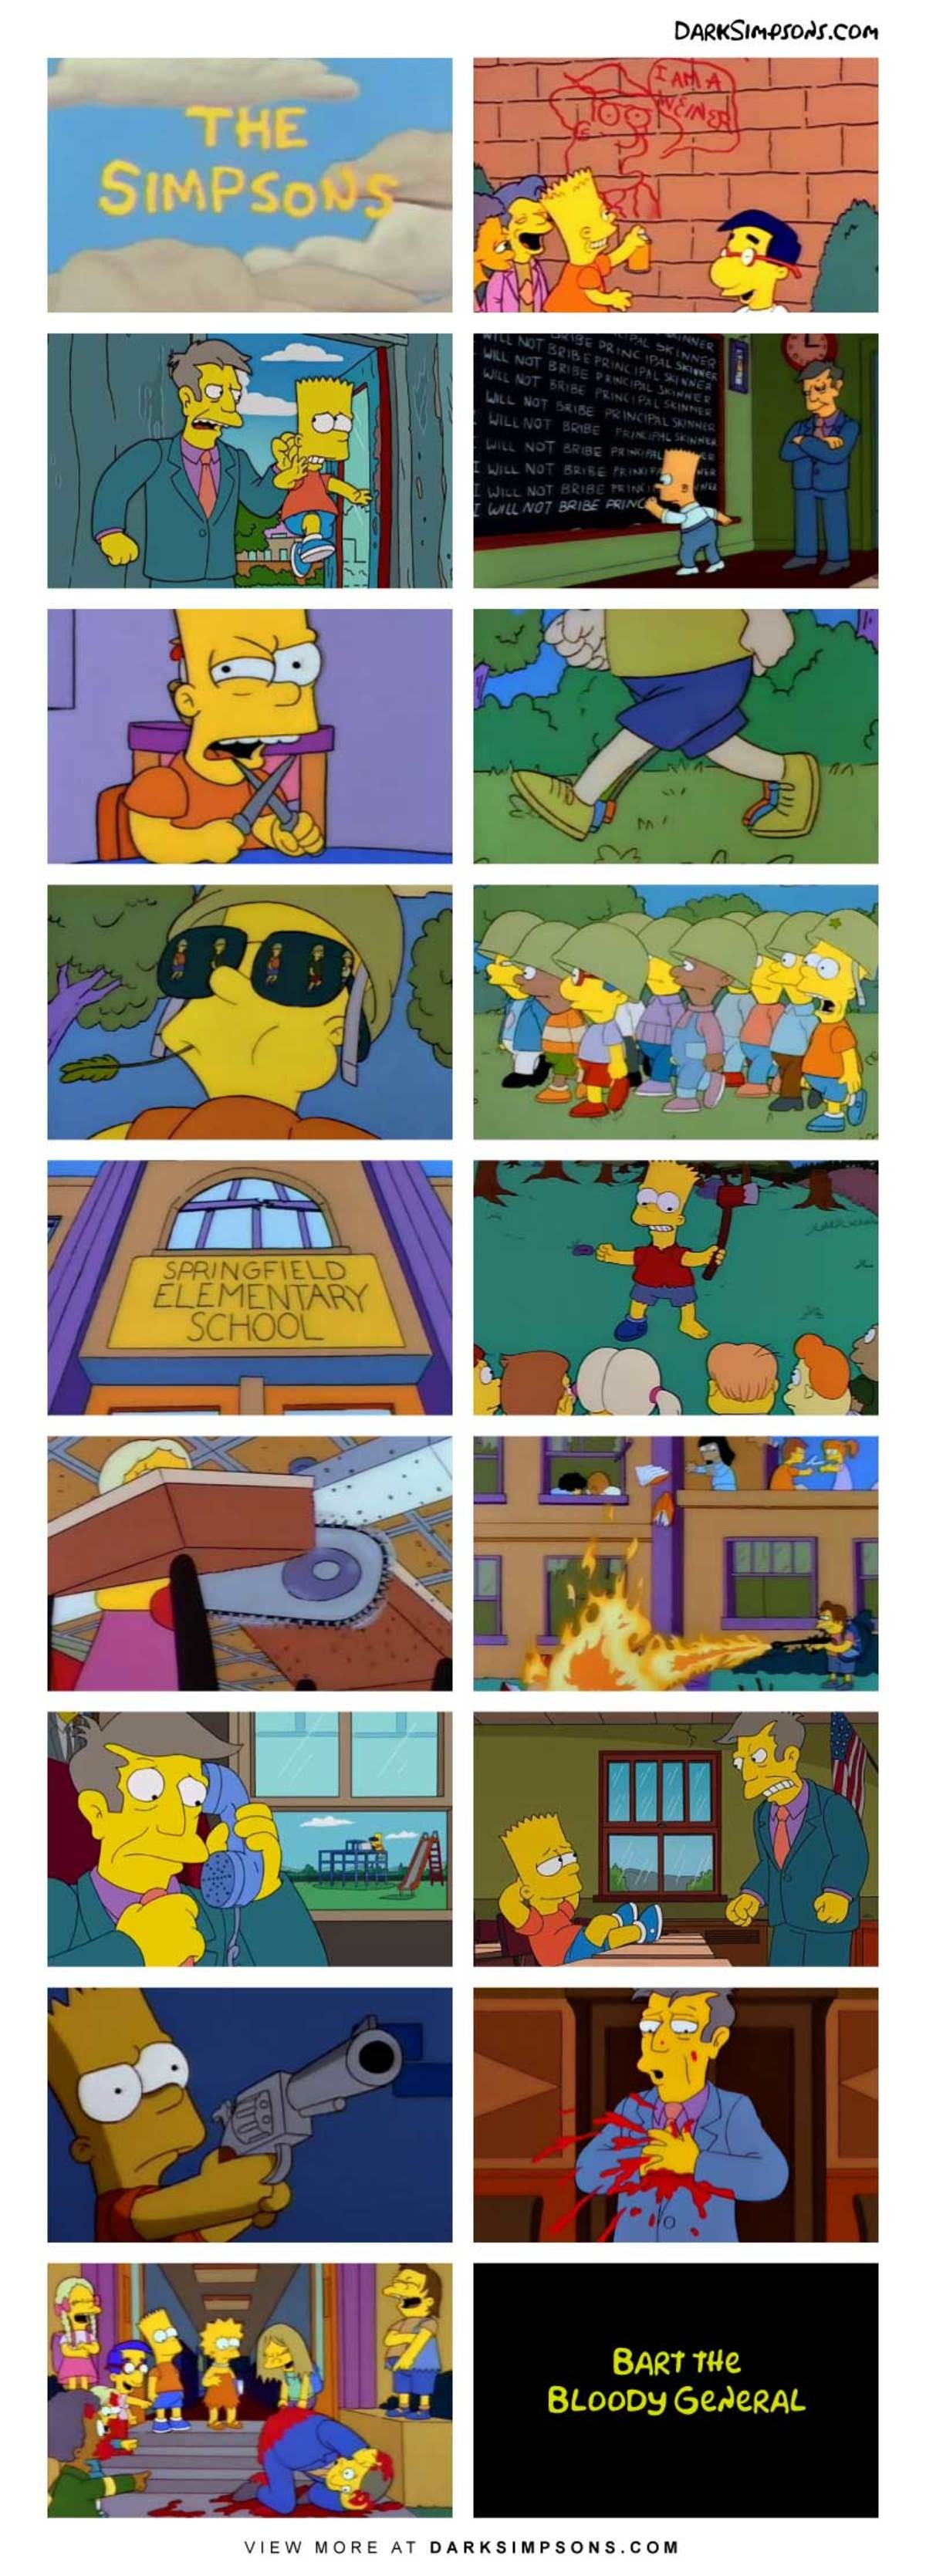 Bart: Start digging some nerd holes.. . Bapt we BLOODY. All the other kids with their pumped up kicks